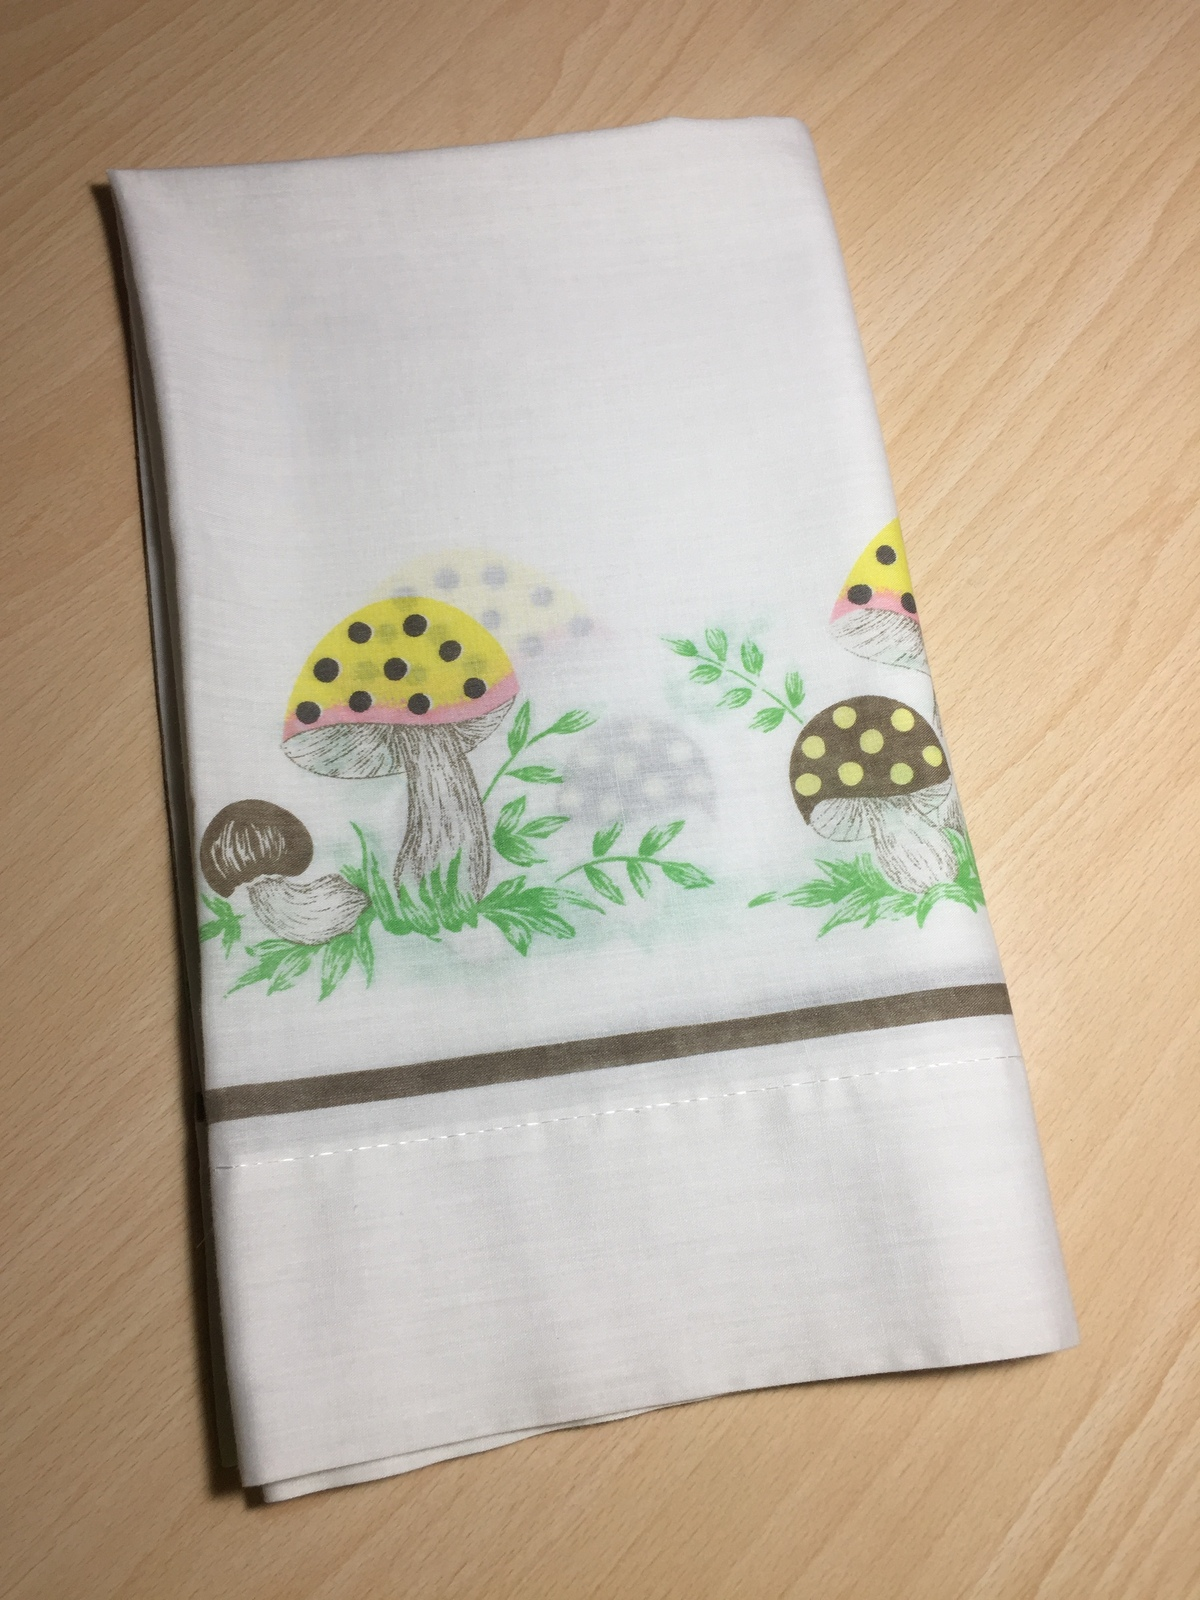 Vintage 70s Merry Mushroom Kitchen Curtains From Sears 1 Set Of 4 Fabric Lace